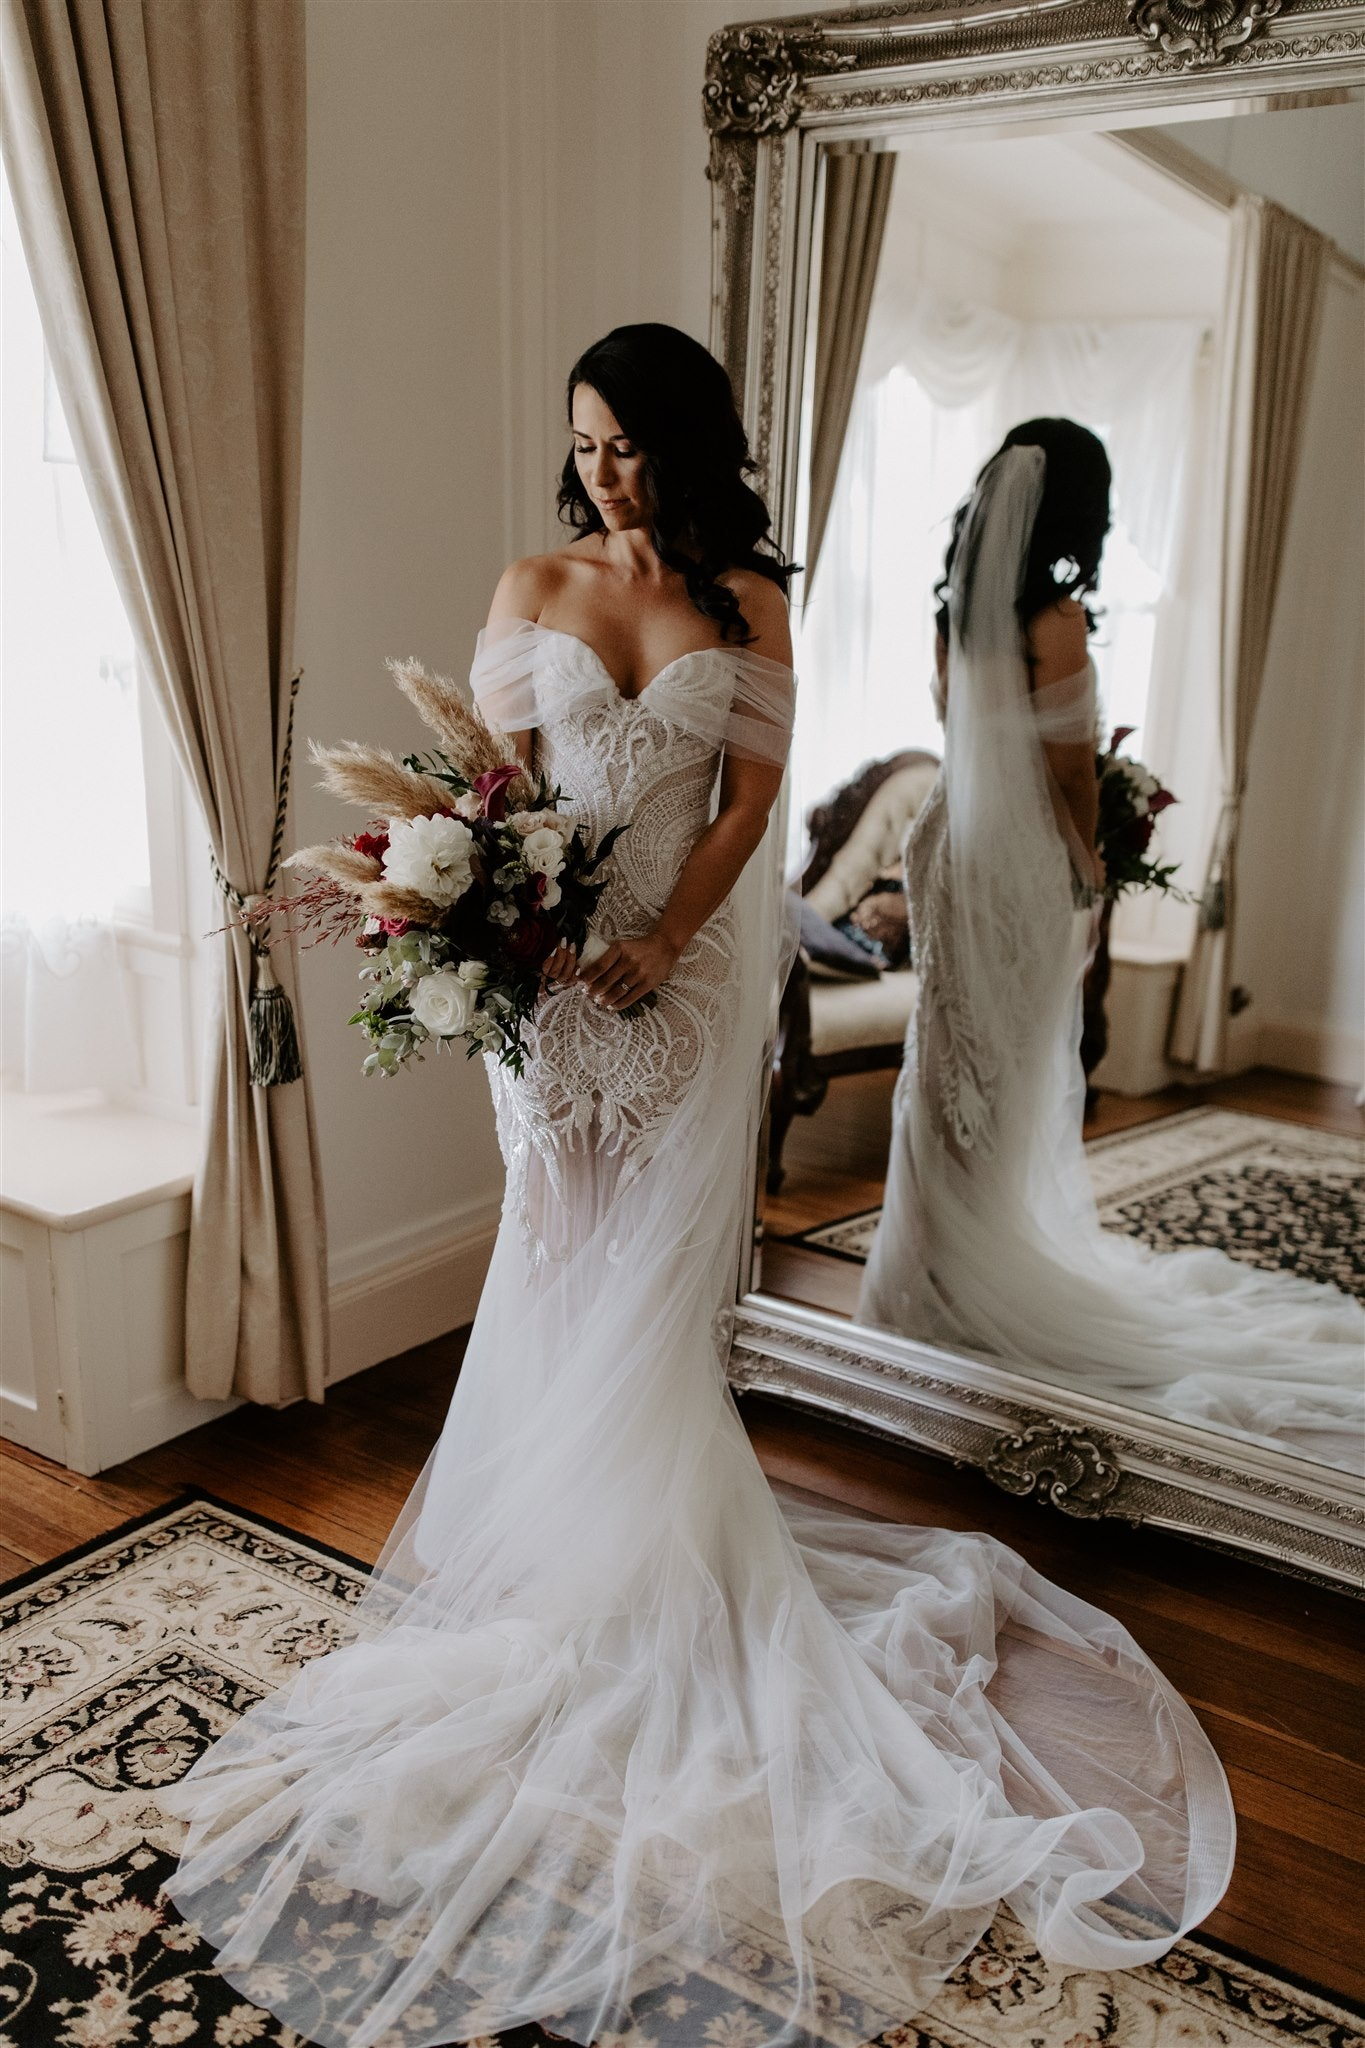 Bride stands in front of big mirror holding flowers